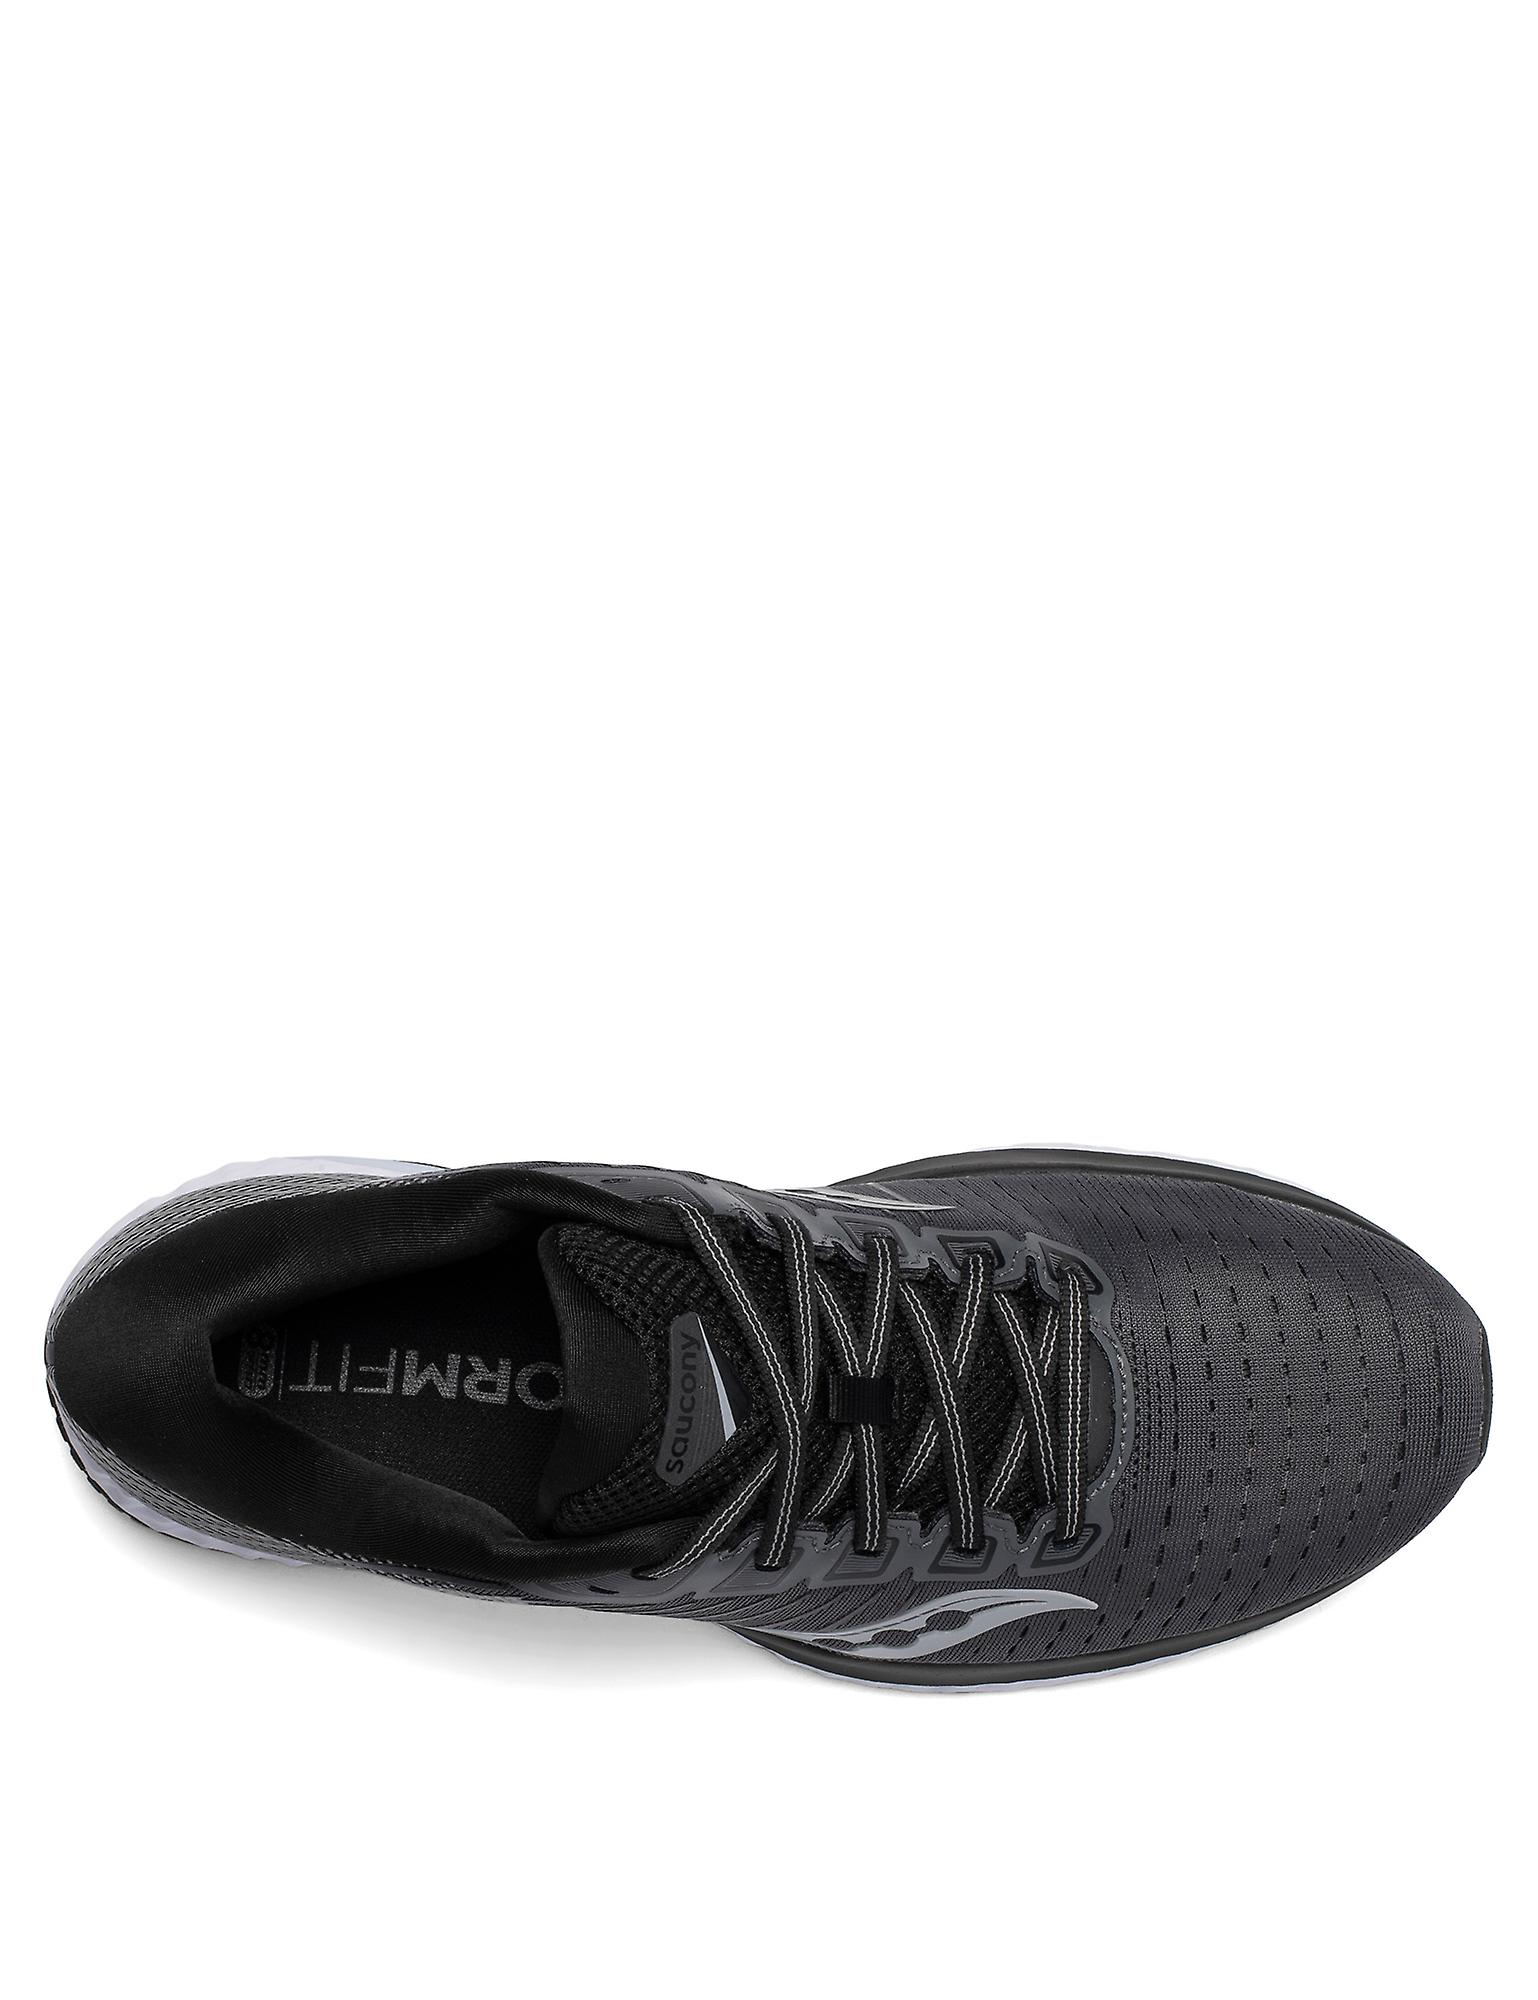 Saucony Men's Guide 13 Running Shoes -Silver